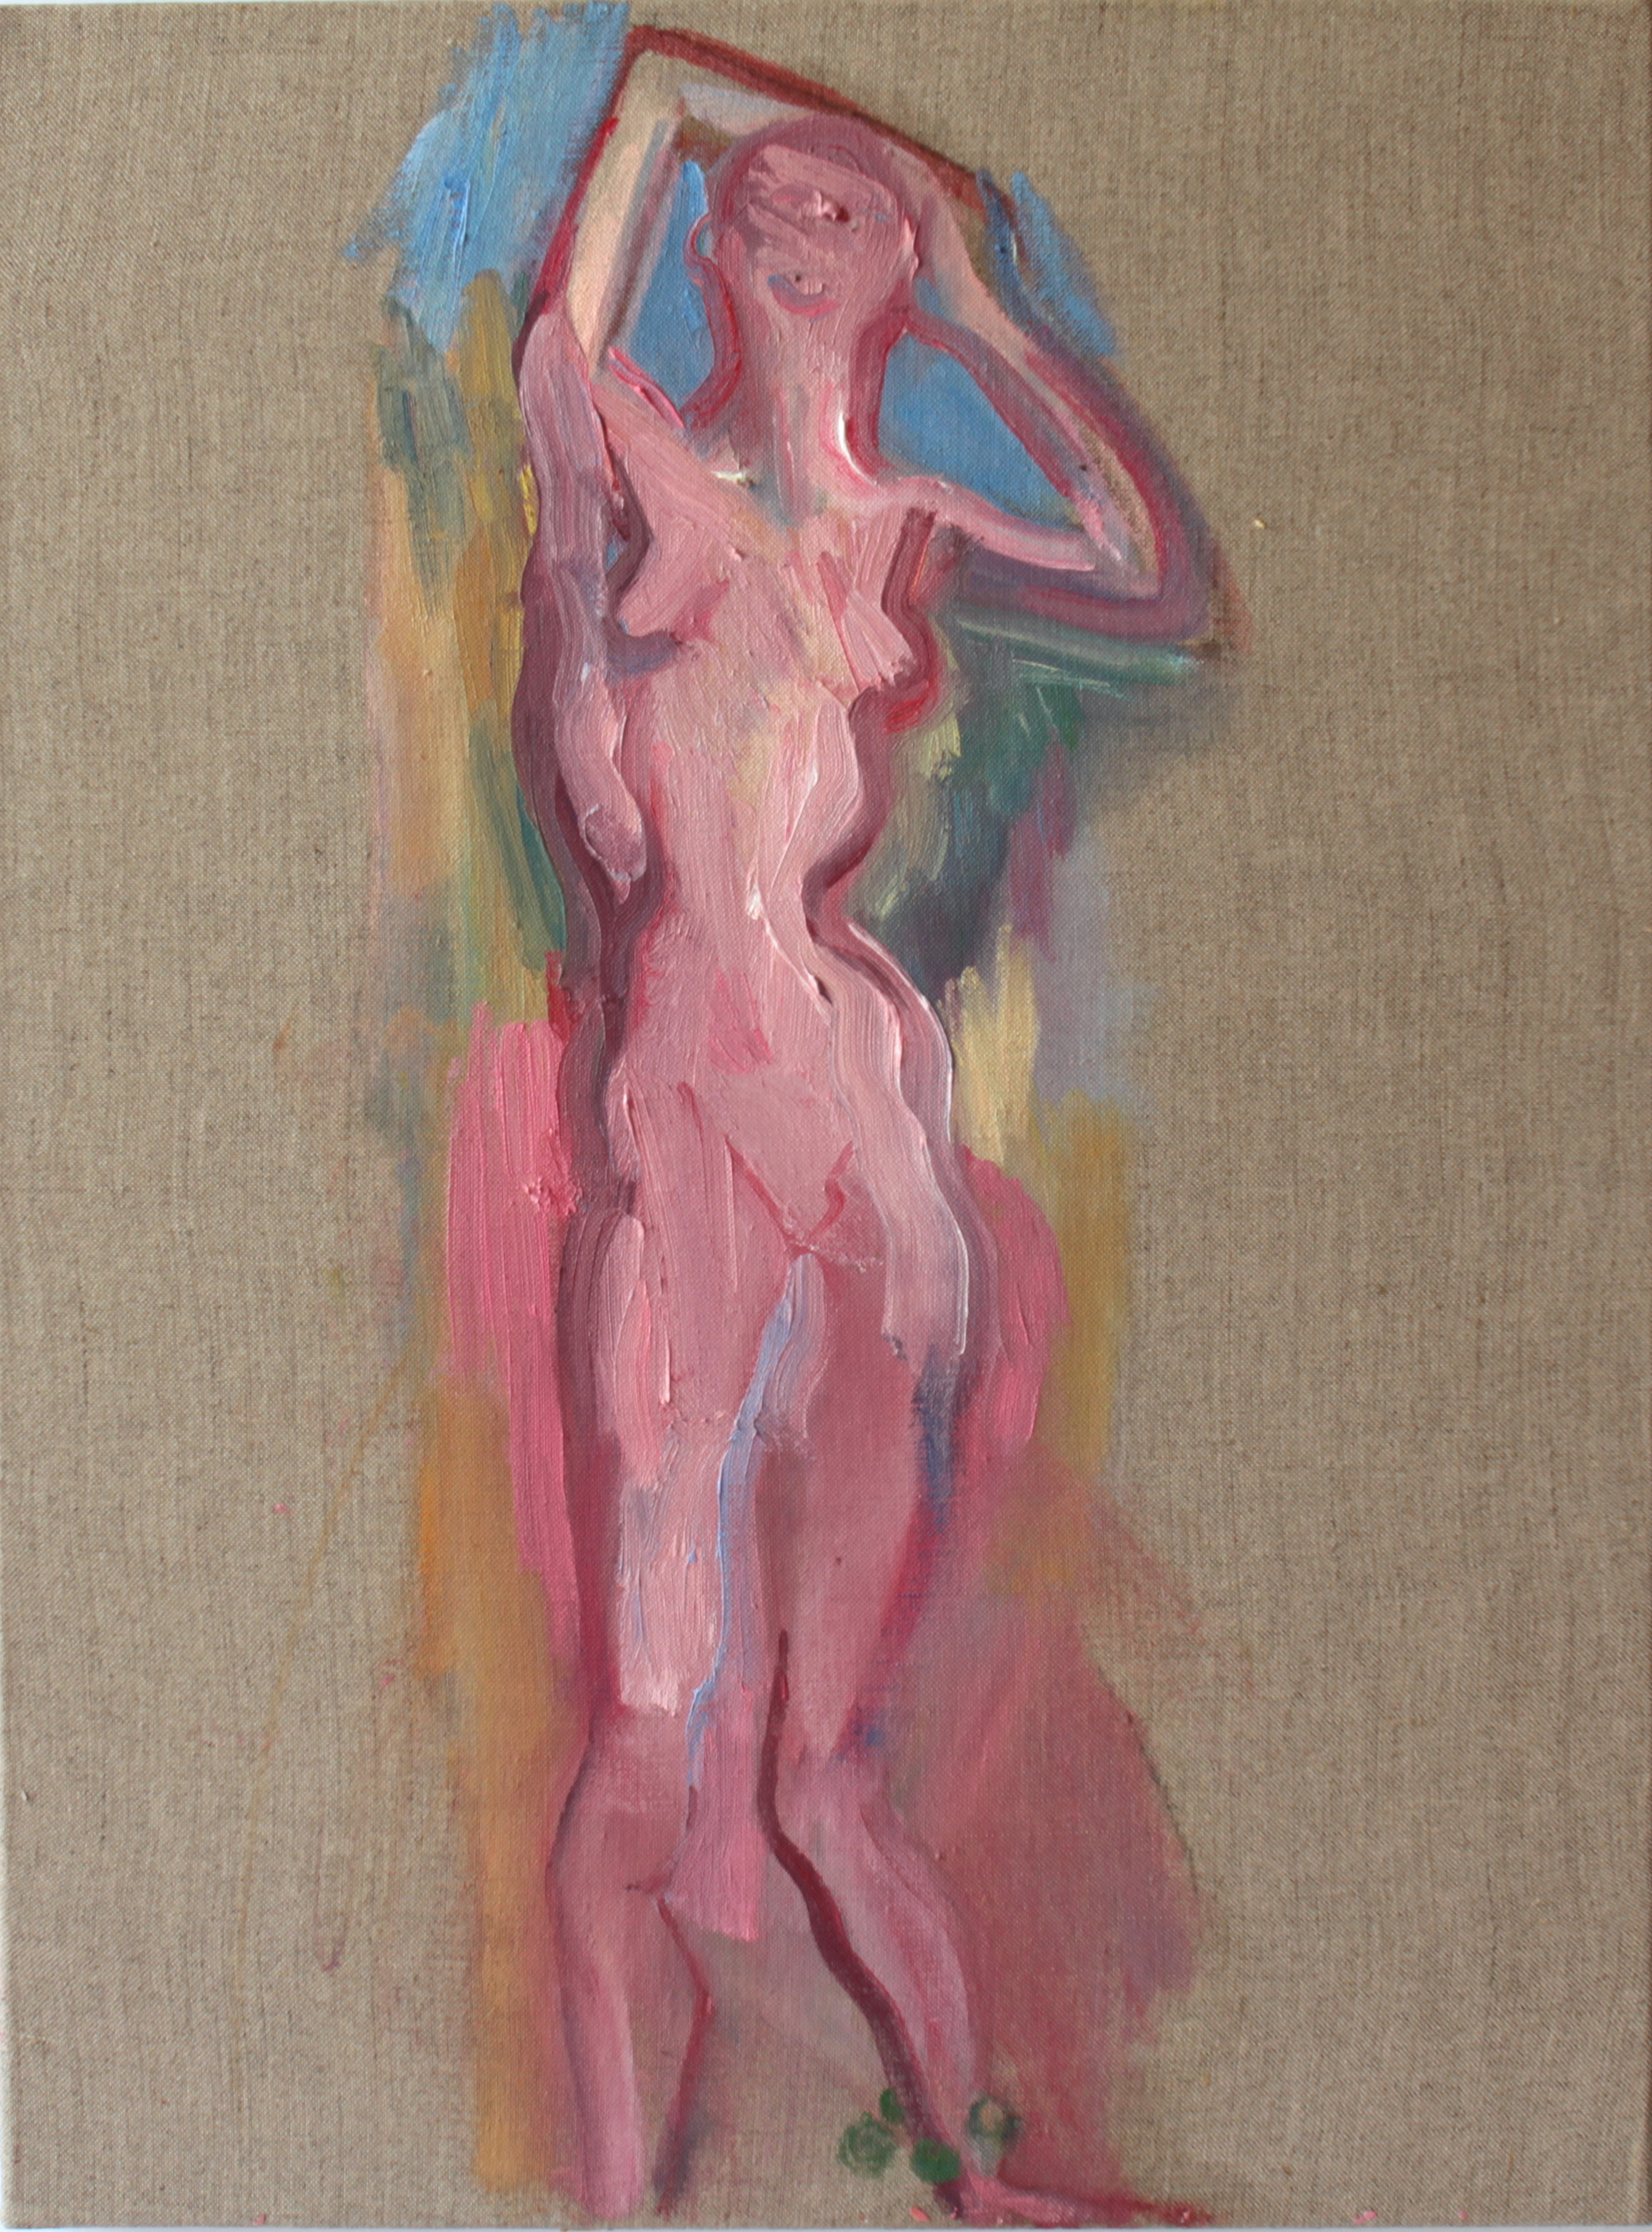 Kore, Oil on linen, 50.4 x 37.8 cm, 2015